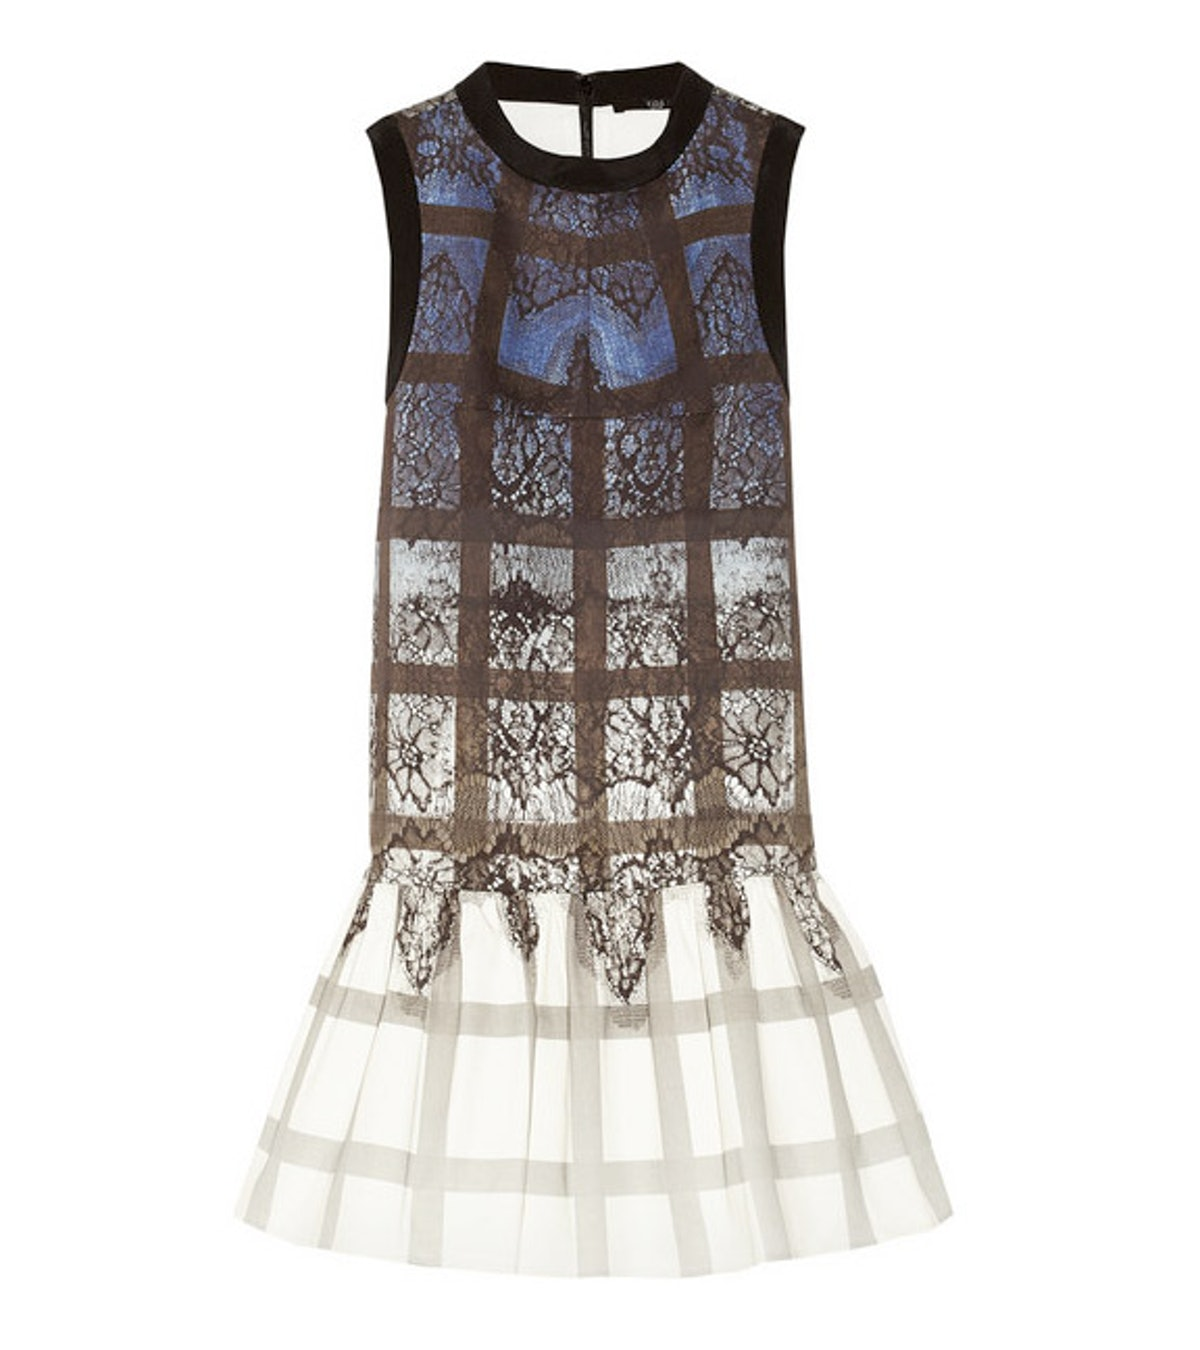 A good cocktail dress is a must during fashion week— this number can go from day to night with ease. *Tibi printed stretch-cotton mini dress, $435, [net-a-porter.com](http://www.net-a-porter.com/product/408713).*